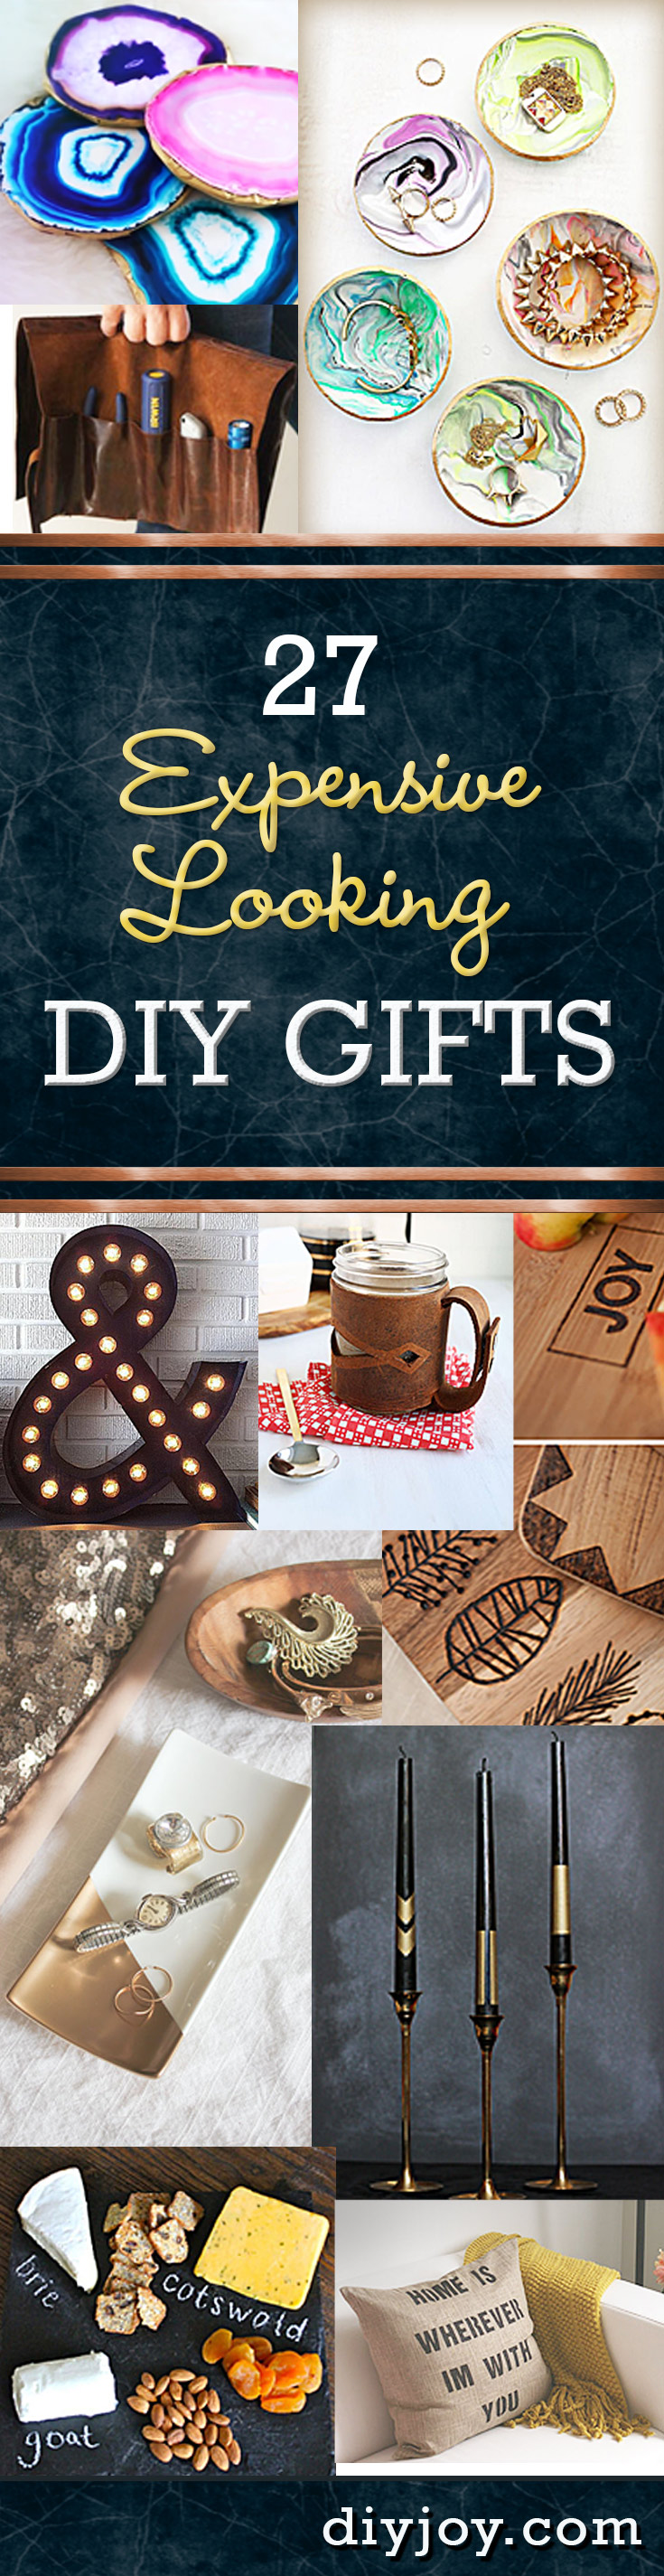 Inexpensive Diy Gifts To Make For Christmas Birthdays Diy Joy Crafts